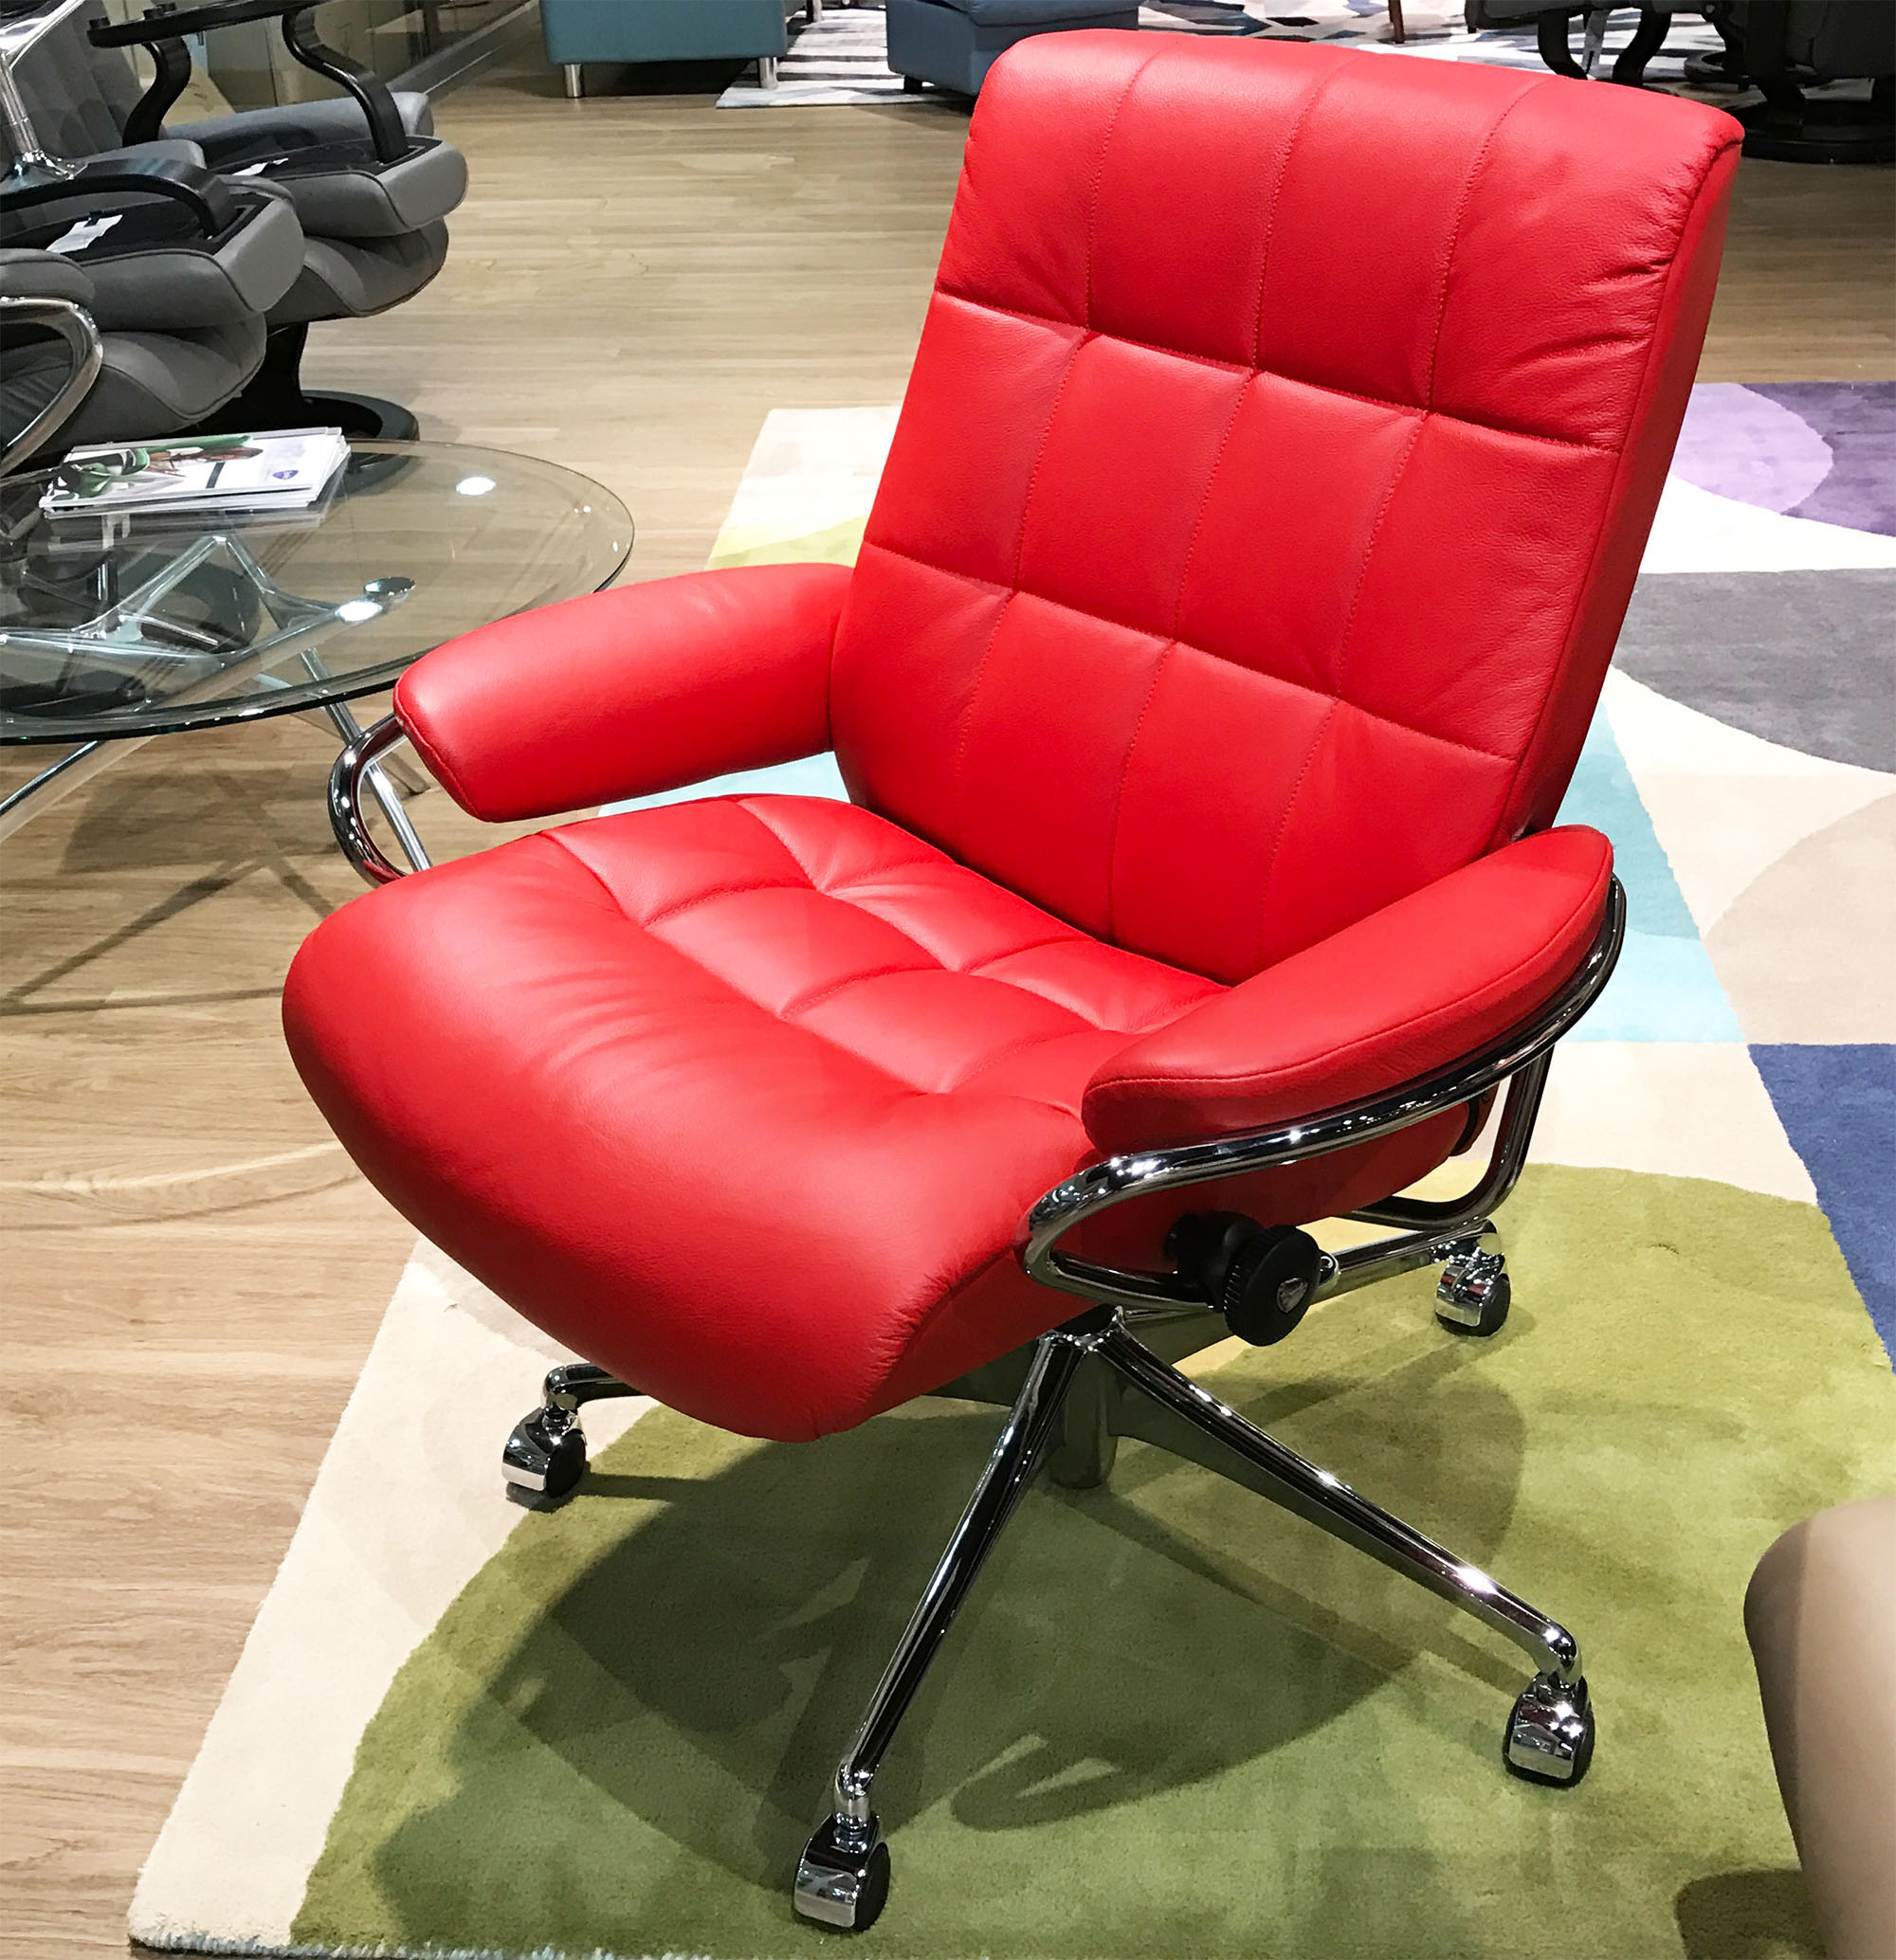 Stressless London Low Back Recliner Chair In Paloma Tomato Red Leather